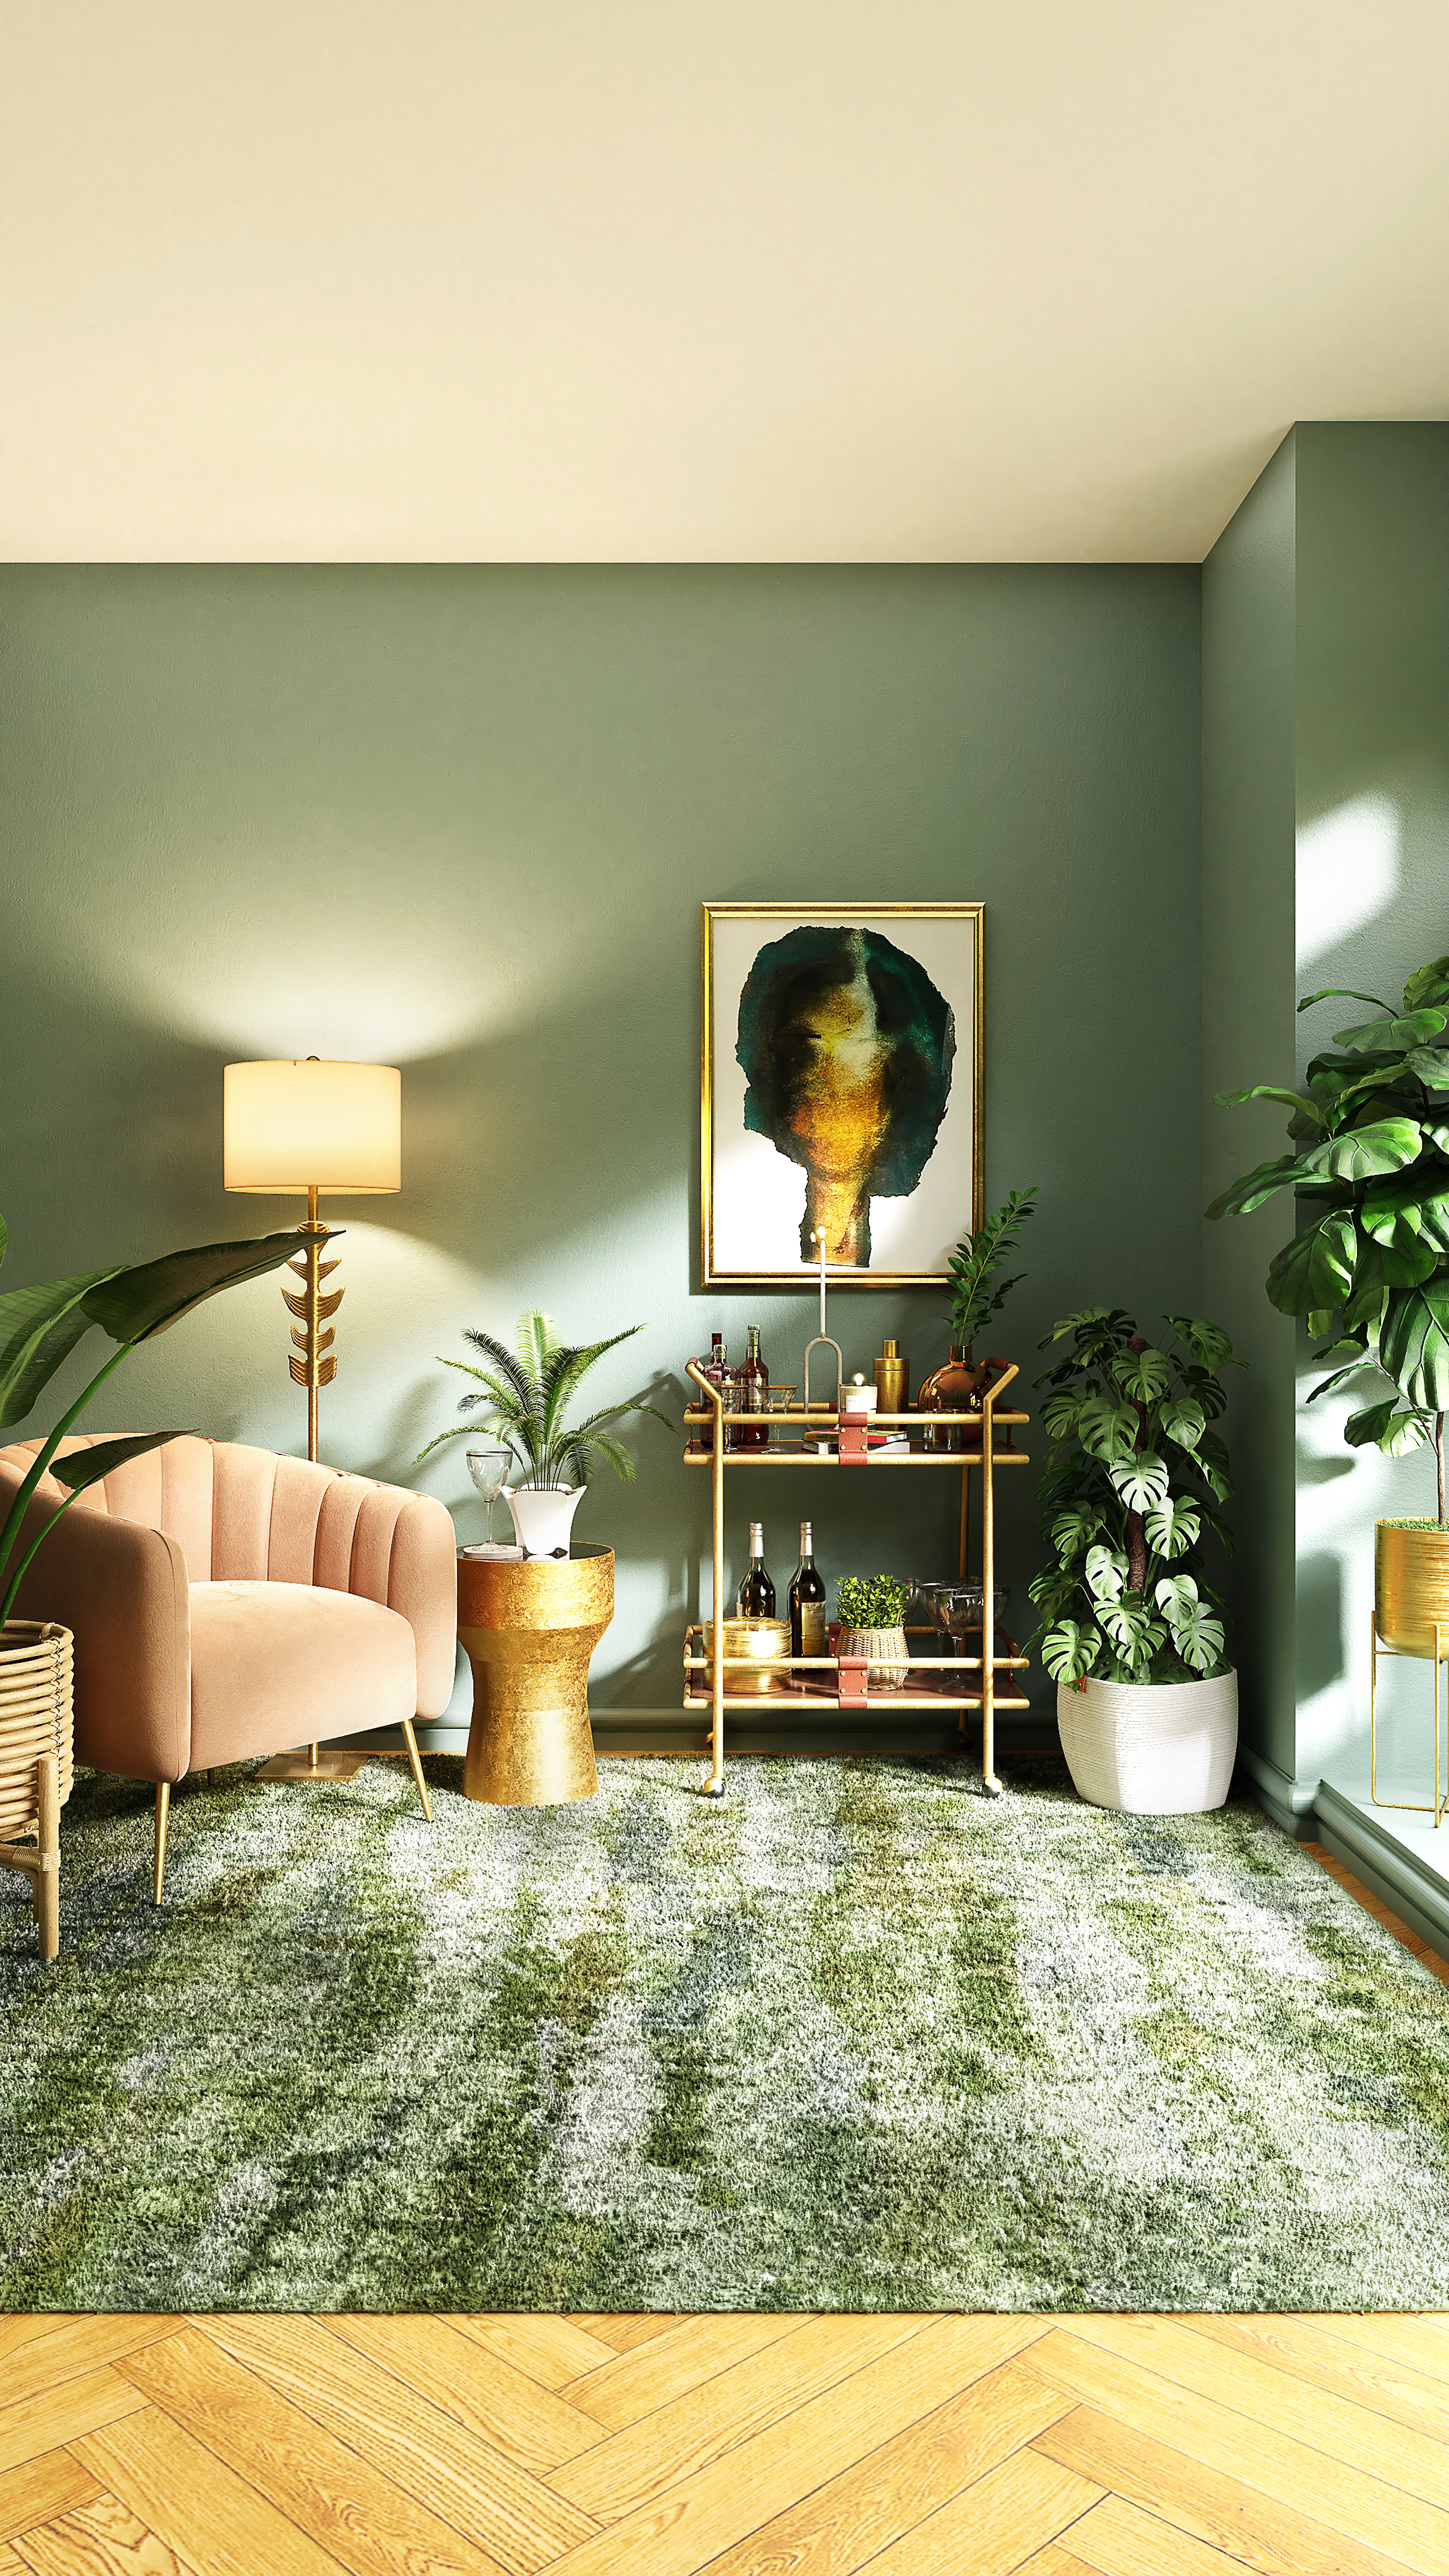 Green walls with off-white ceiling